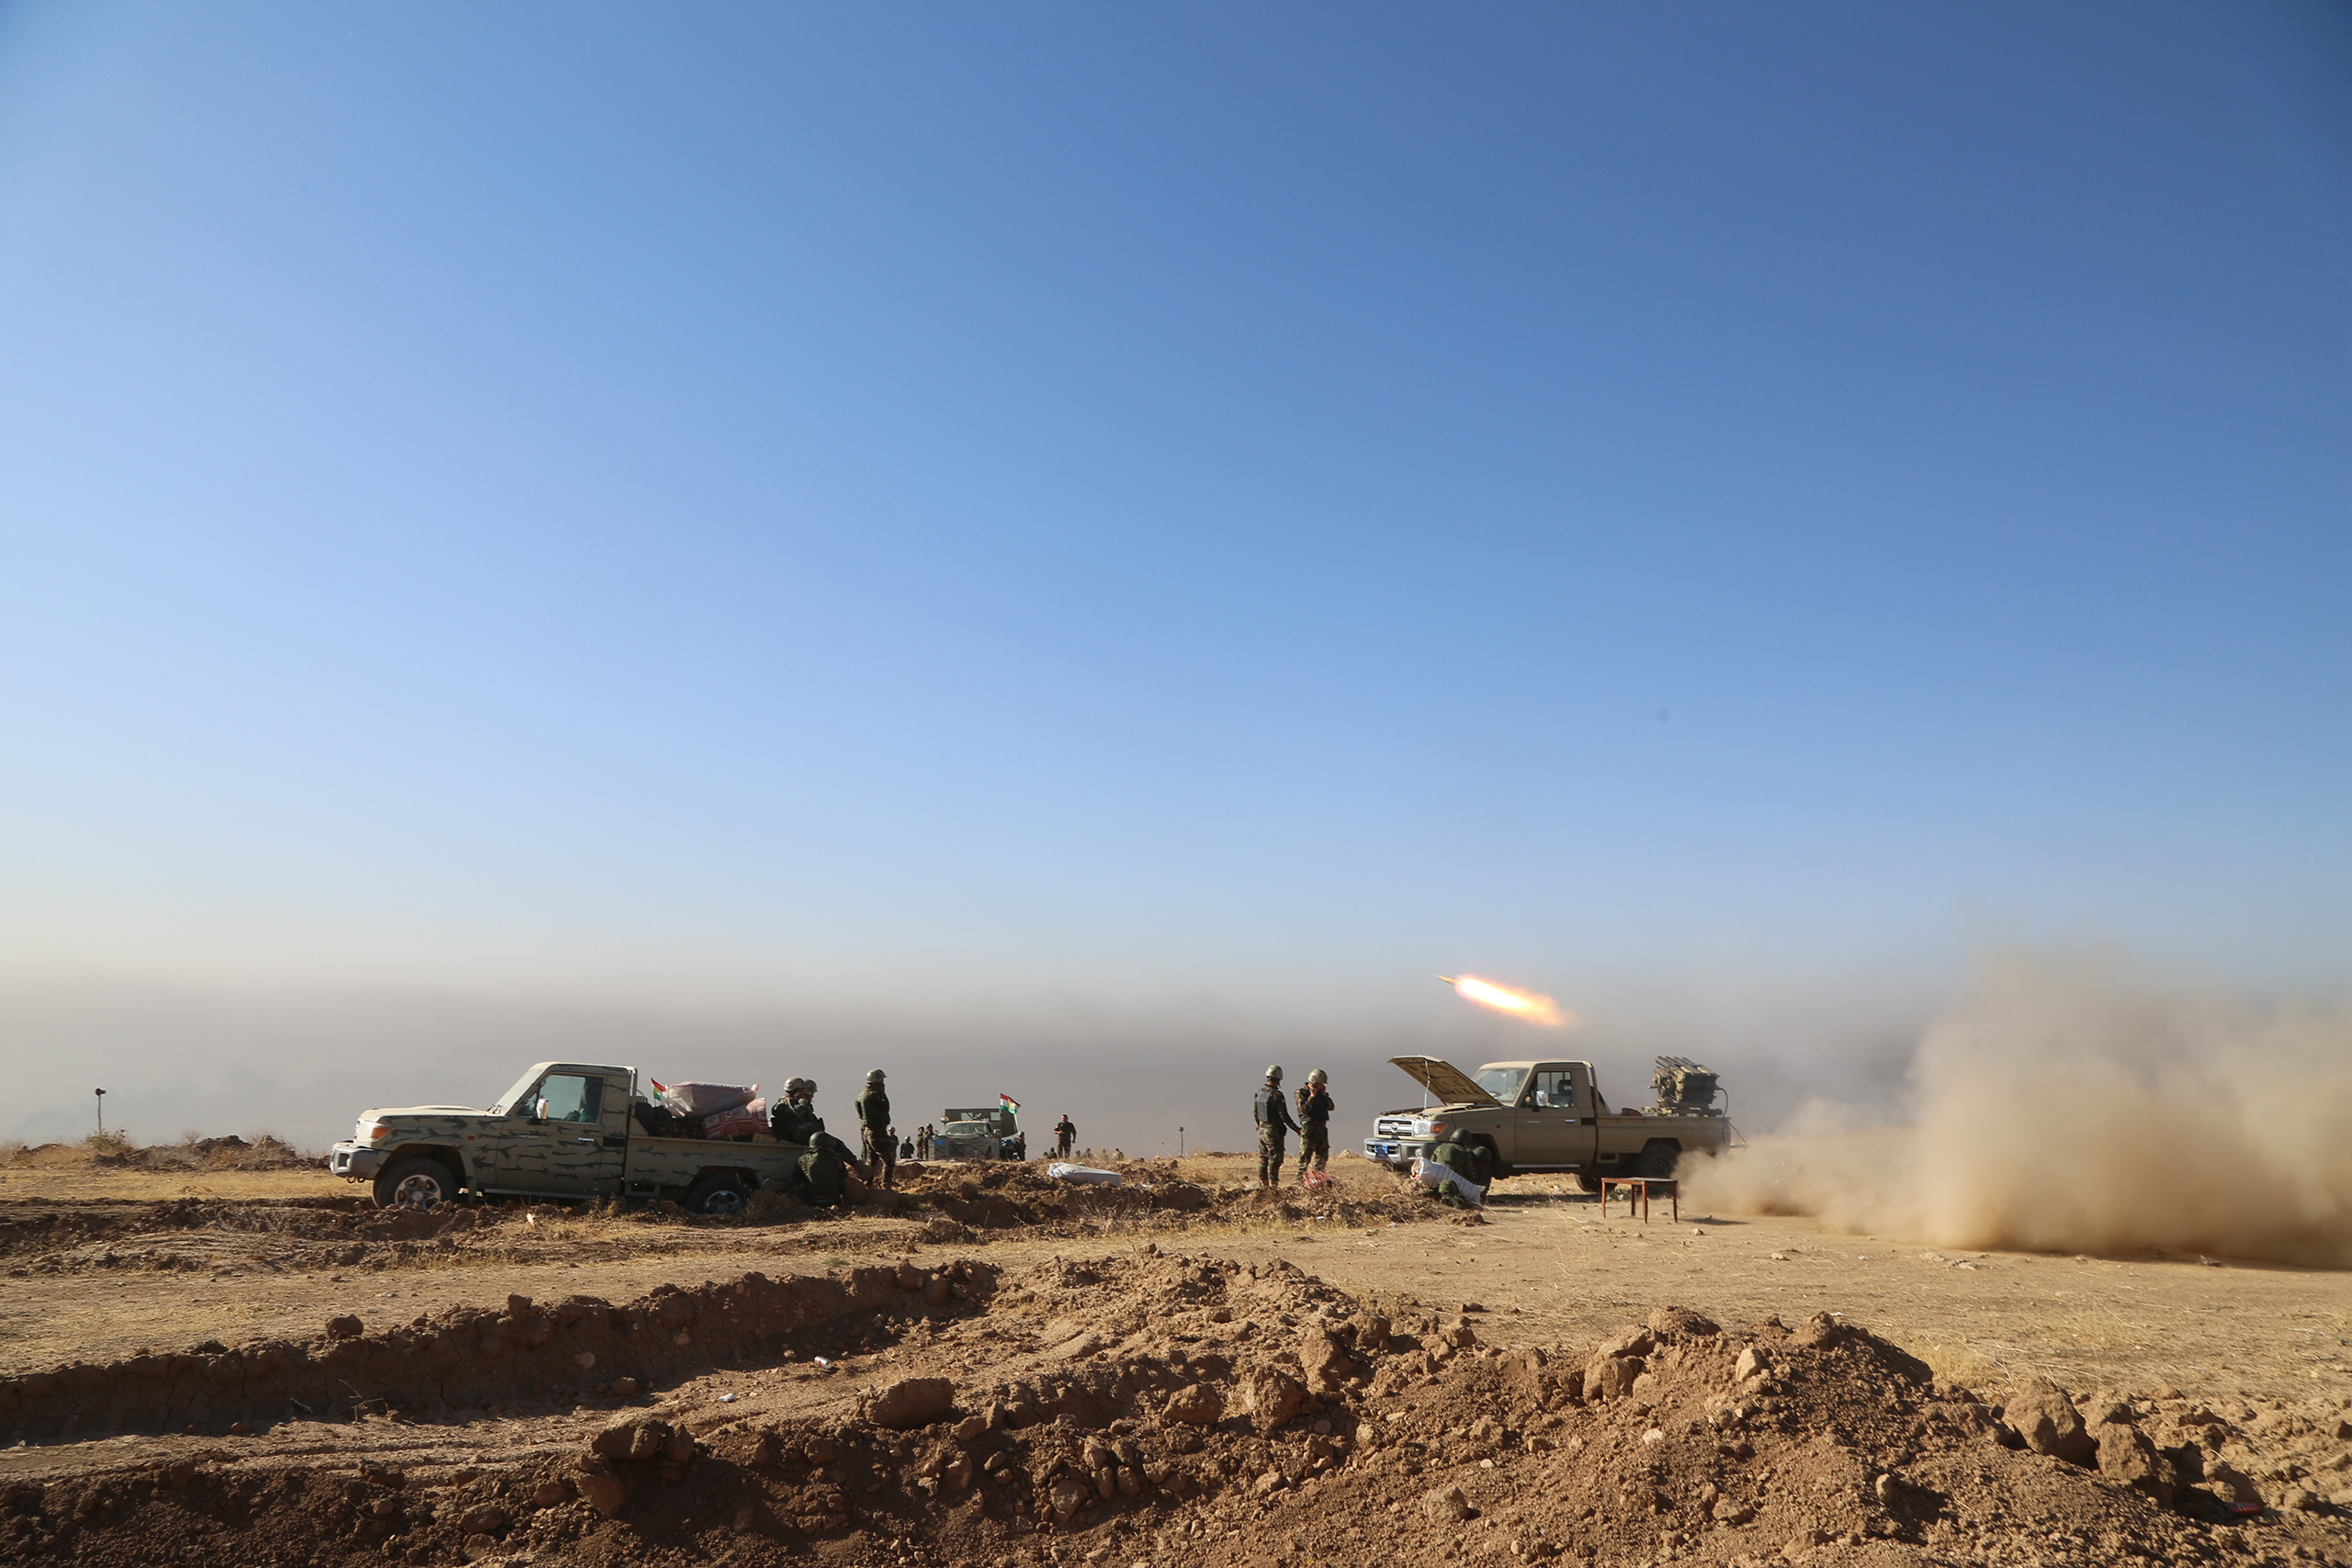 Kurdish Peshmerga forces located at Mount Zardak fire toward an ISIS position during an operation to retake Iraq's Mosul, held by the militant group since 2014, on Oct. 17, 2016.